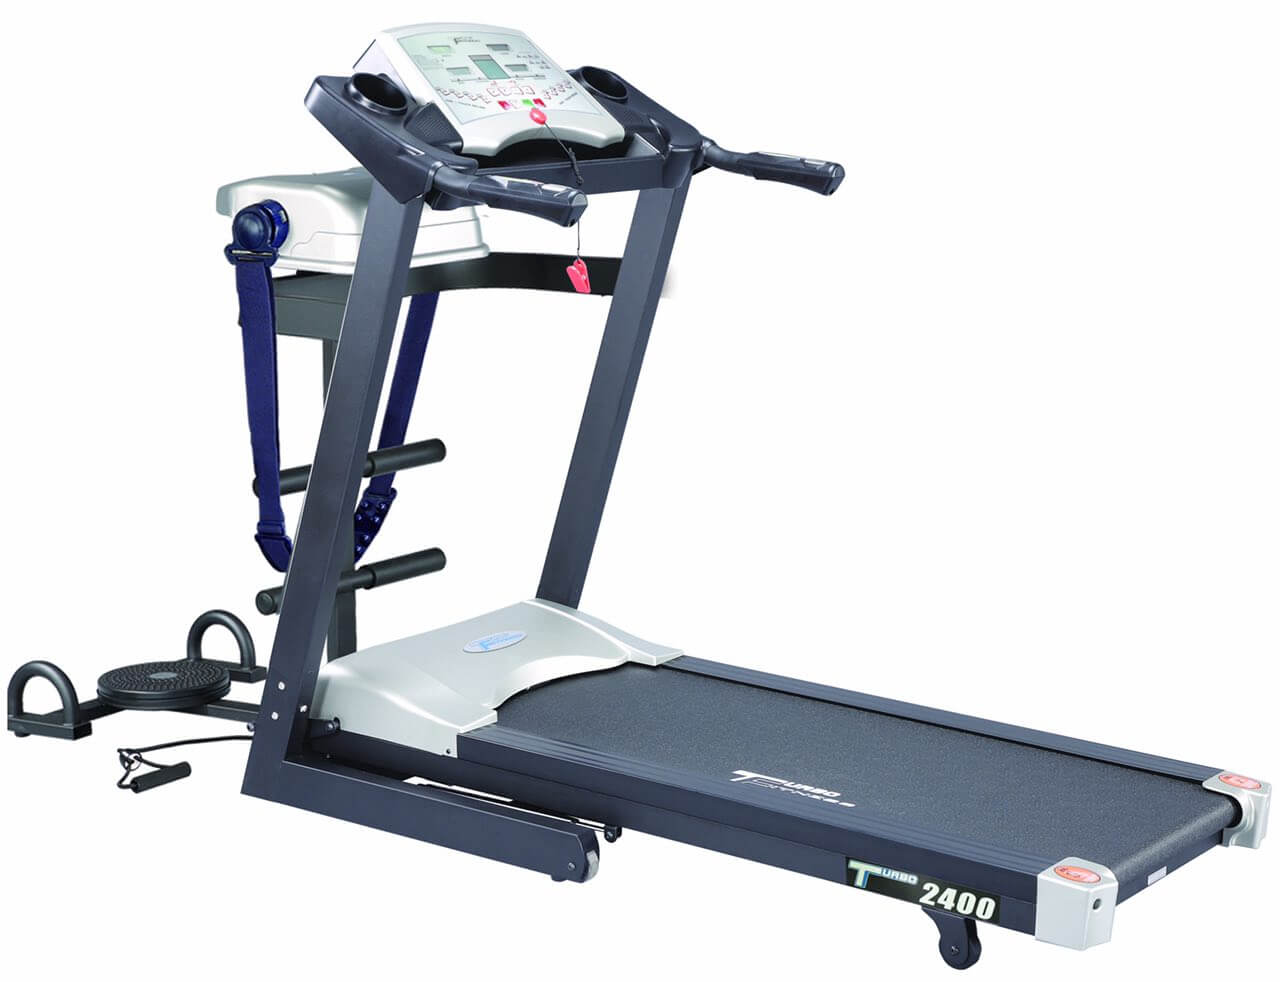 Turbo Fitness 2400 treadmills